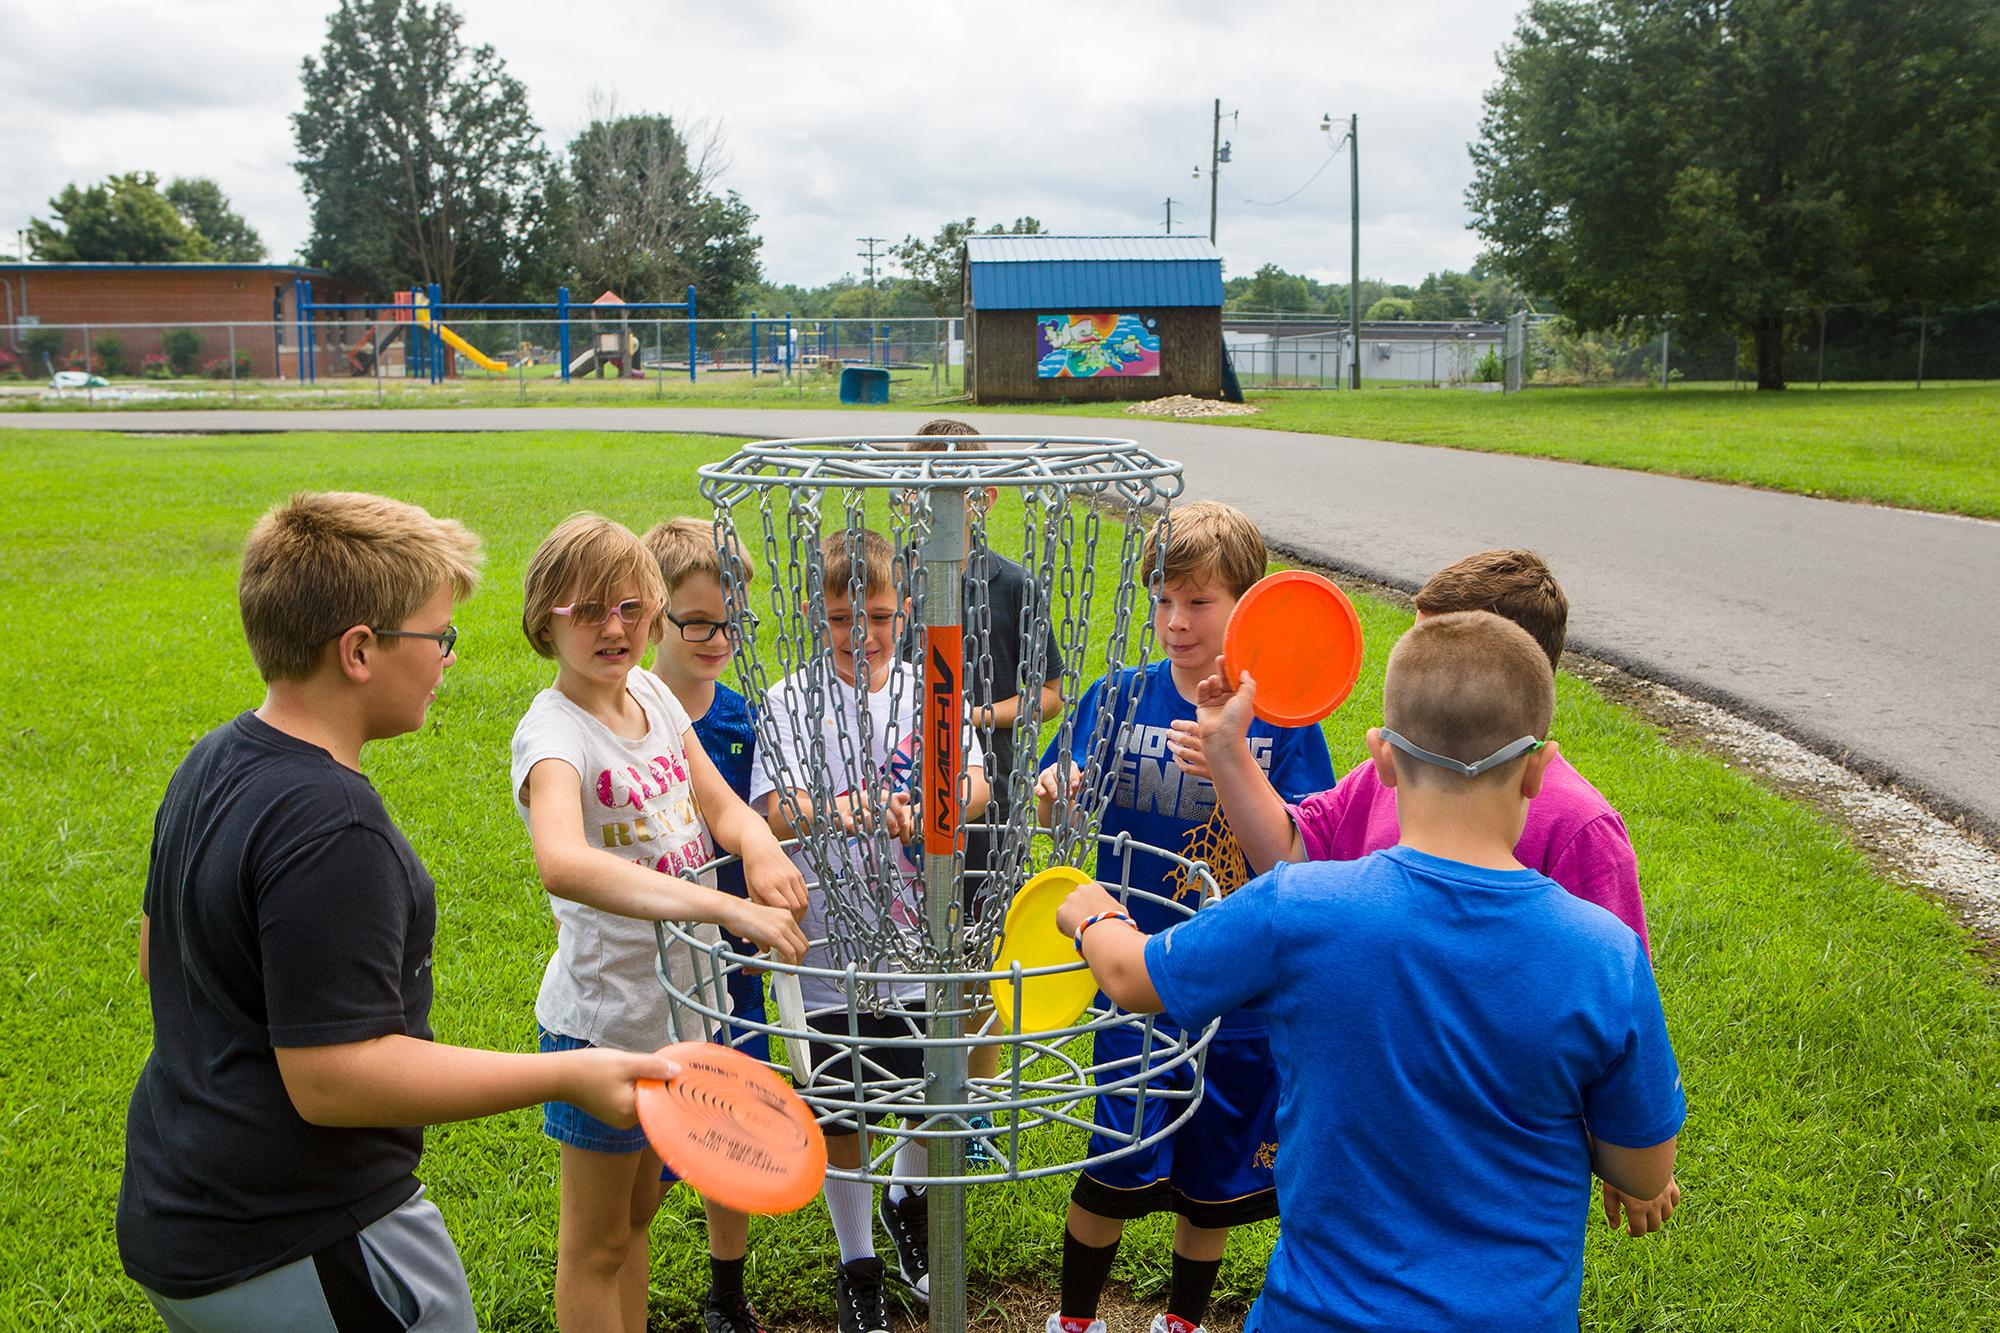 The Clinton County Extension Service used CDC funding To help purchase frisbee golf equipment FOr the elementary school in Clinton County.